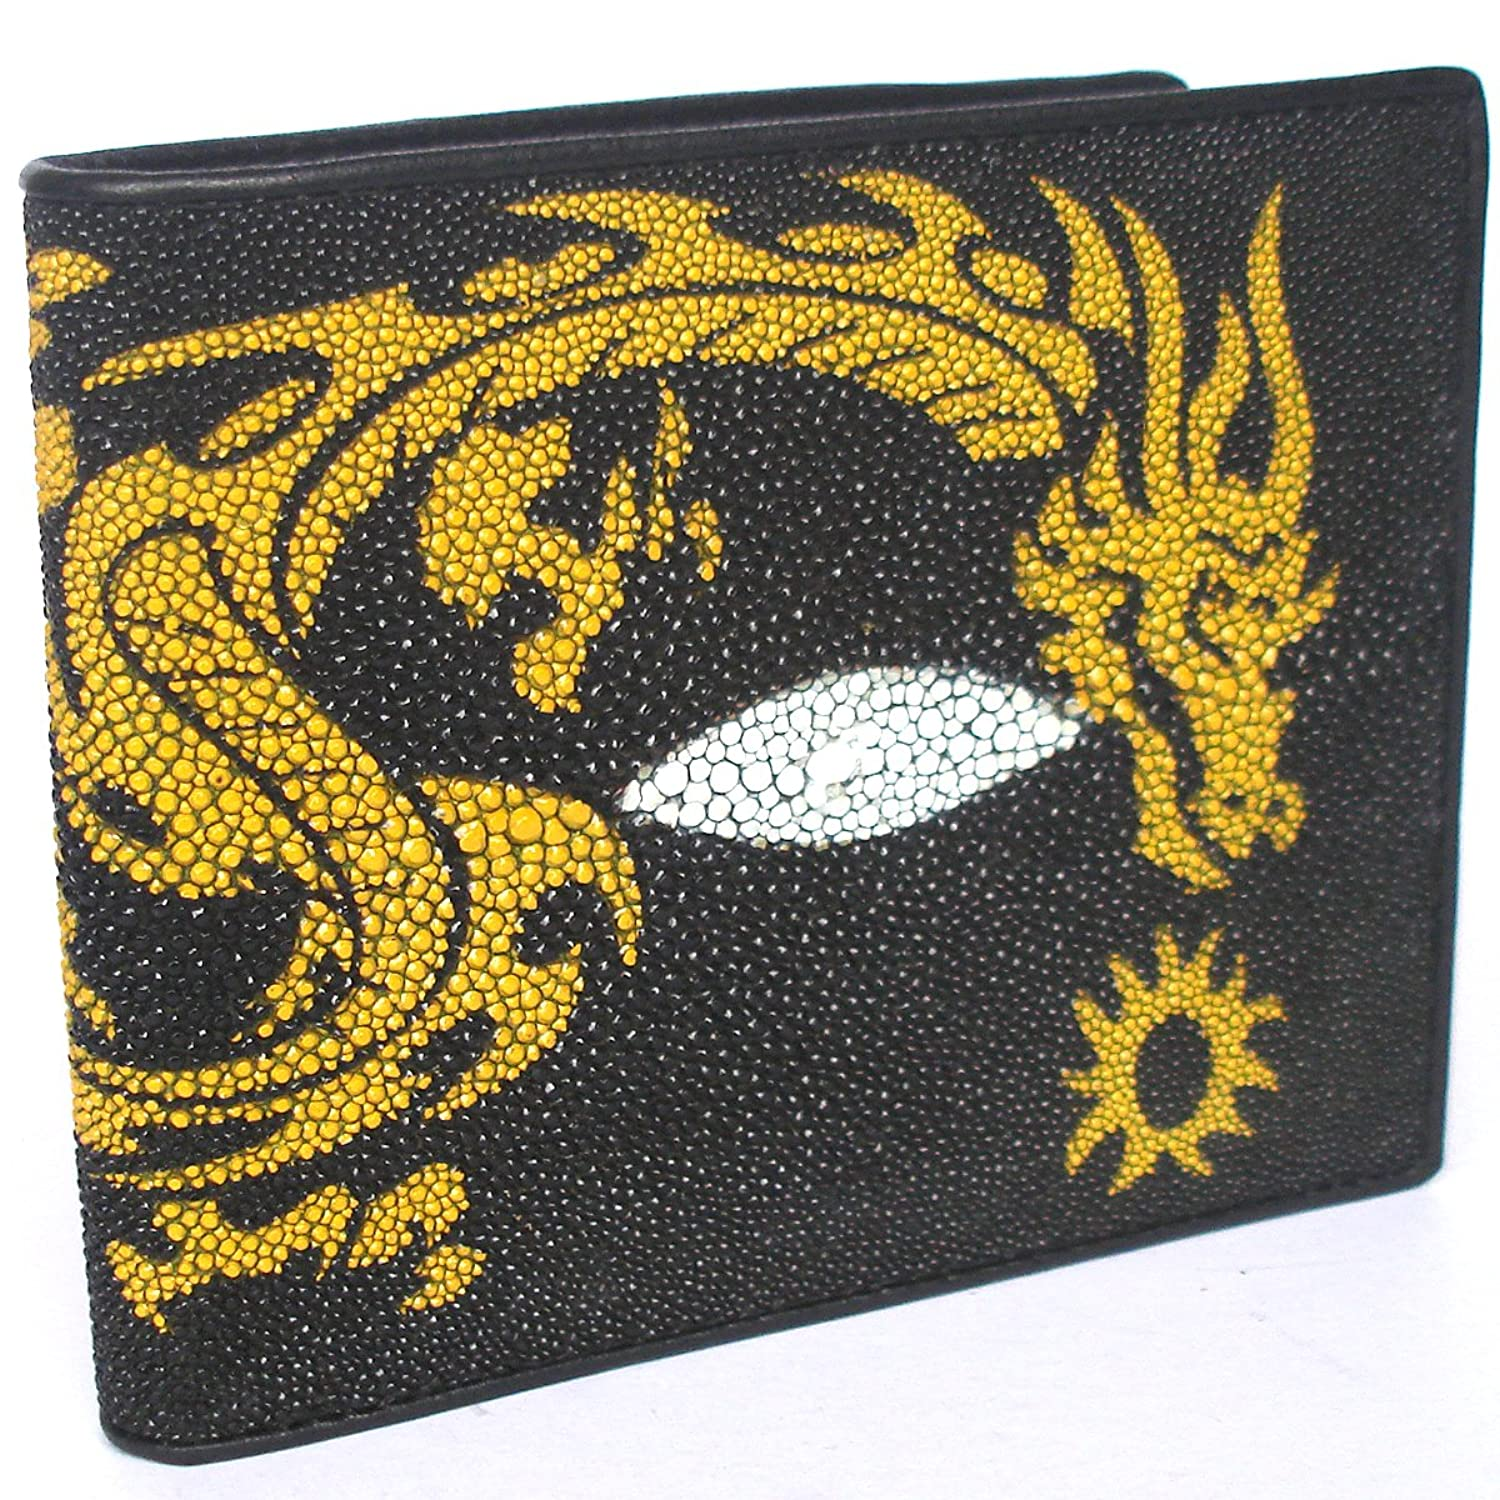 """HelloBangkok"" 100 % GENUINE STINGRAY LEATHER BIFOLD WALLET WITH YELLOW DRAGON (UNISEX) STANDARD US SIZE = CLOSED 4.2 X 3.5 INCHEN"